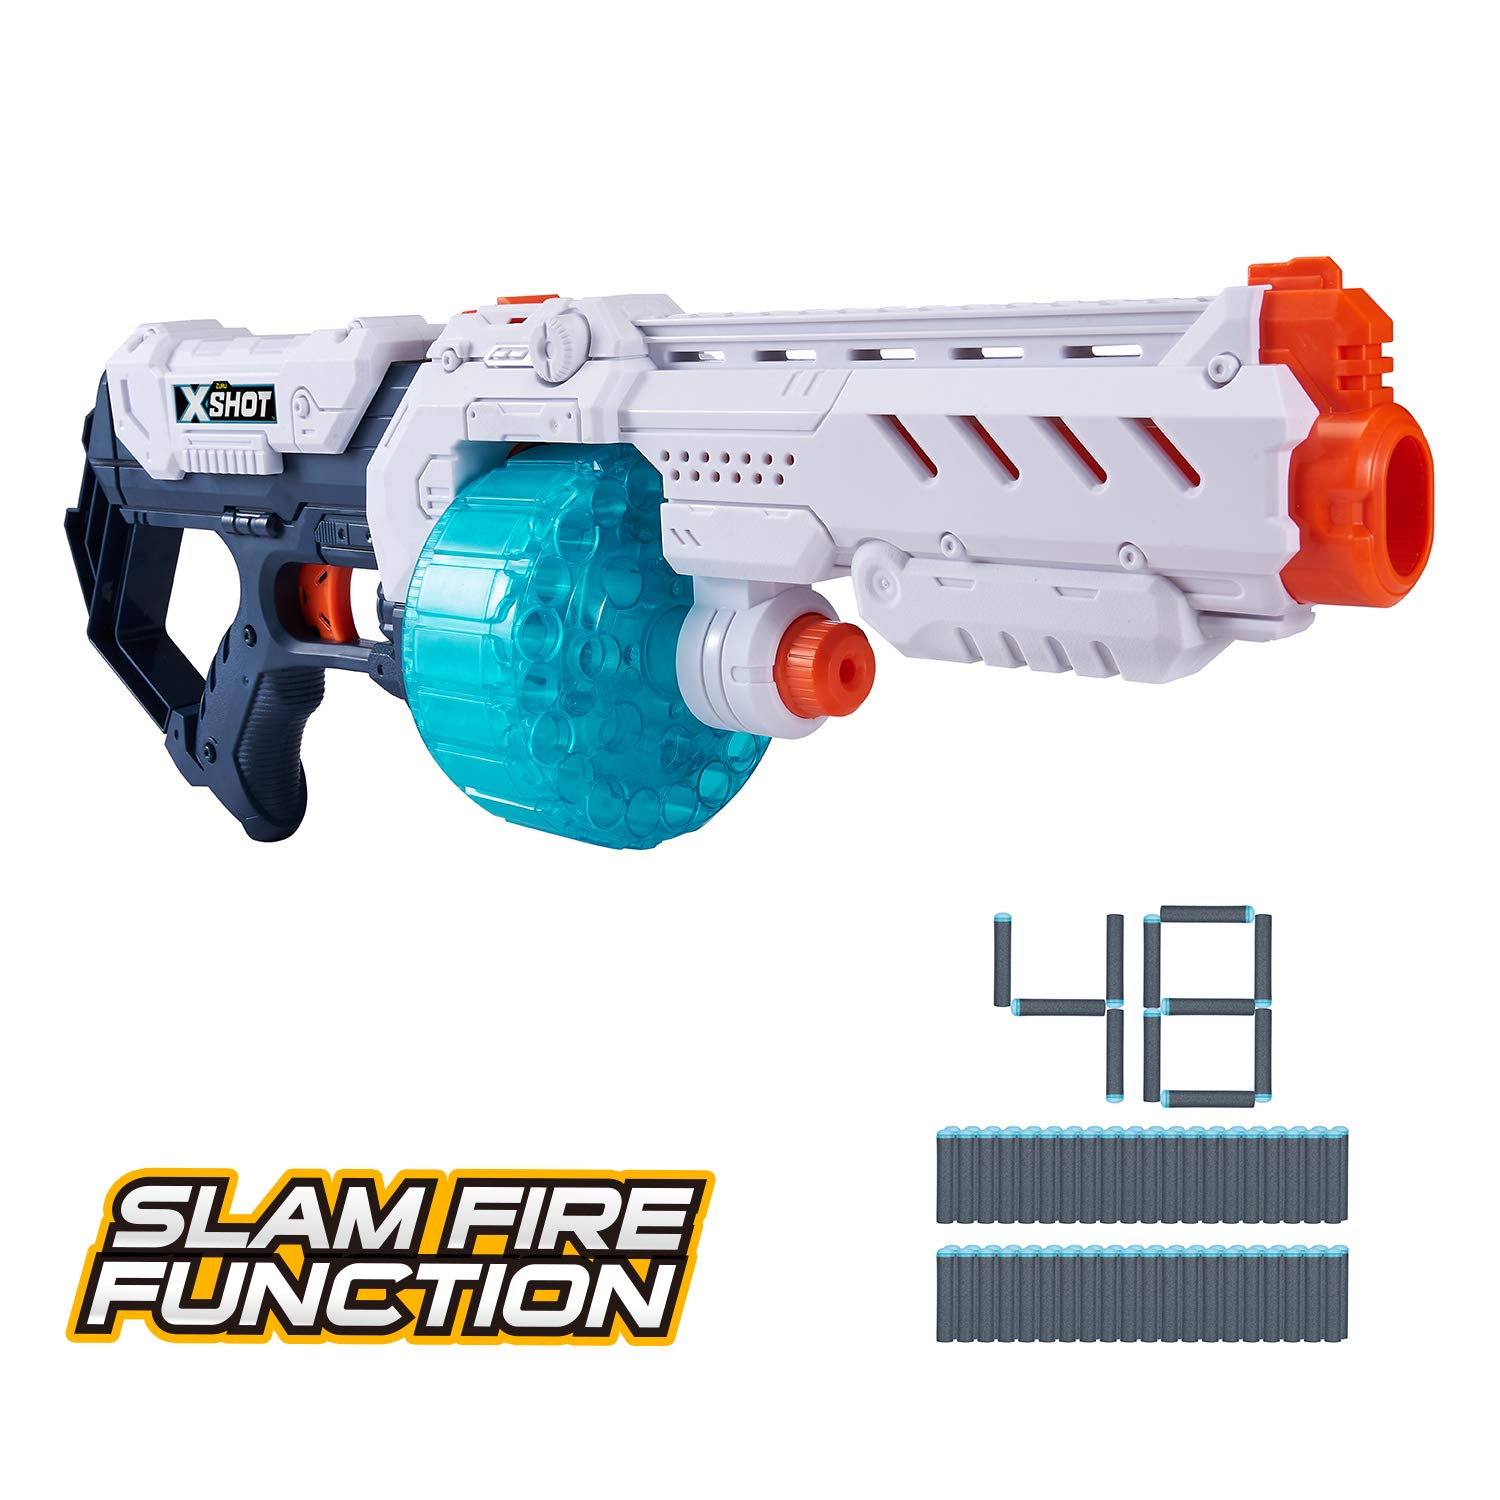 XShot 36270 Excel Turbo Fire